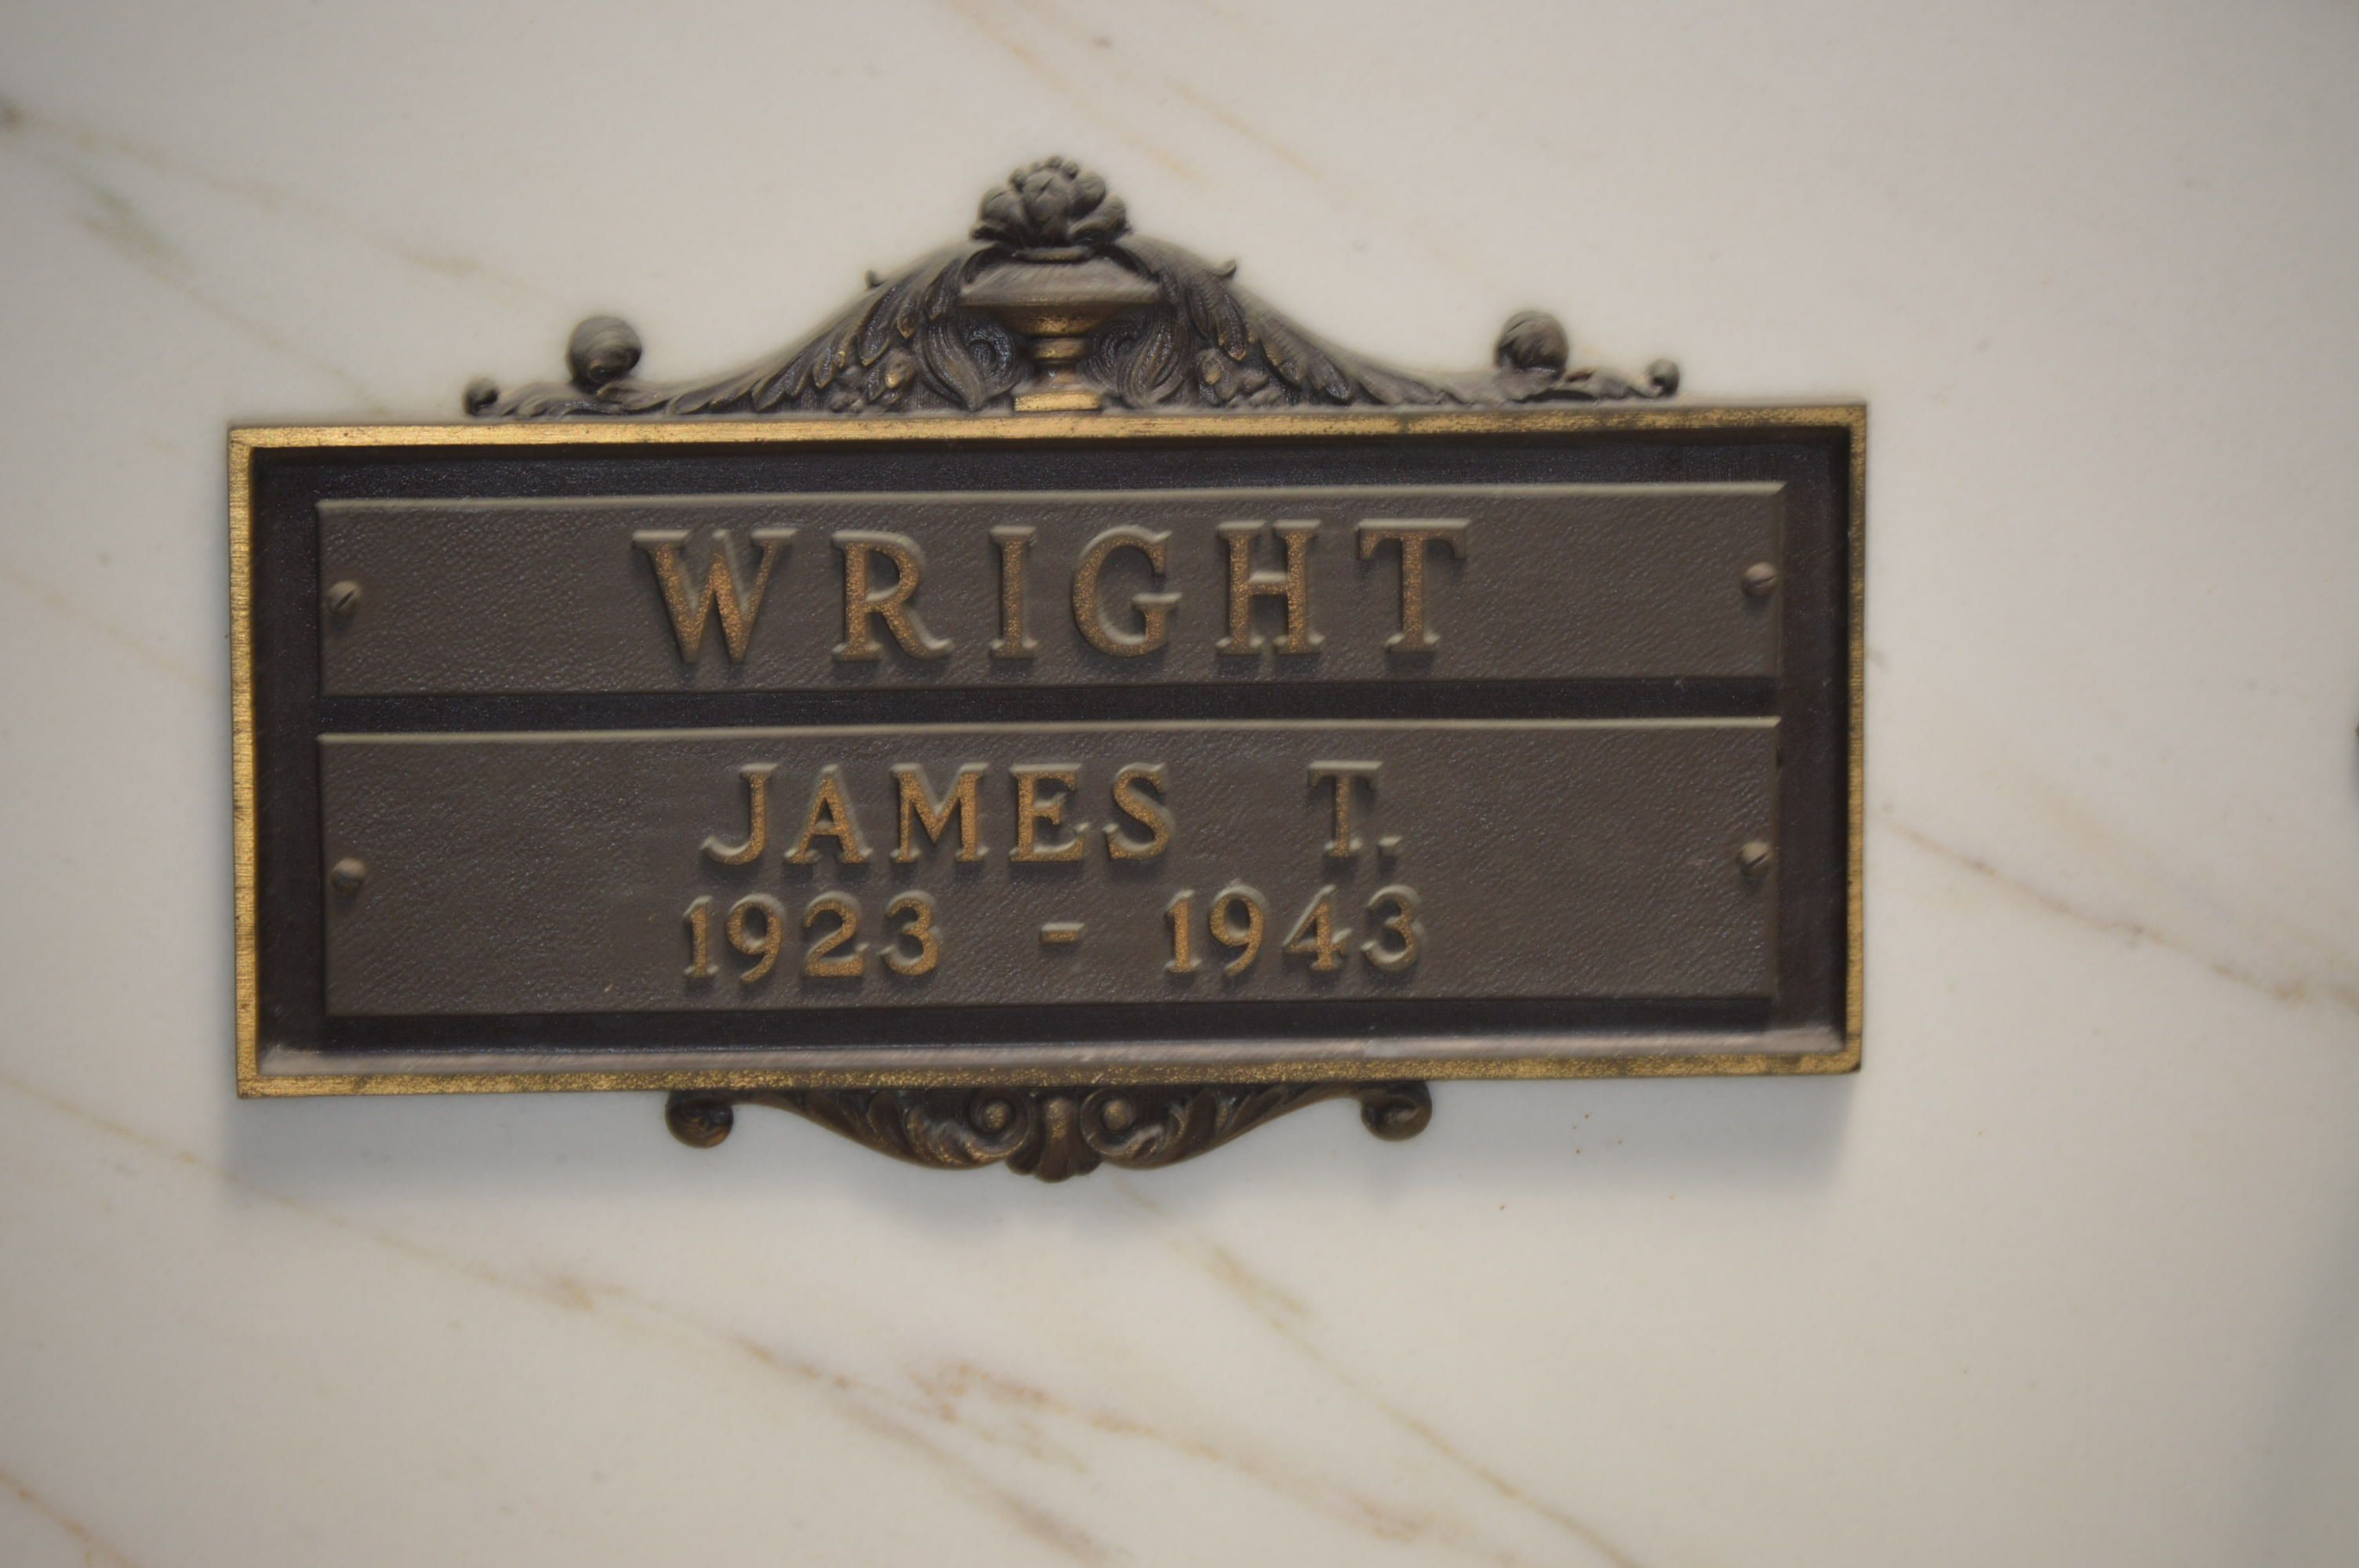 Private James T. Wright | United States Army Military Police Corps, U.S. Government